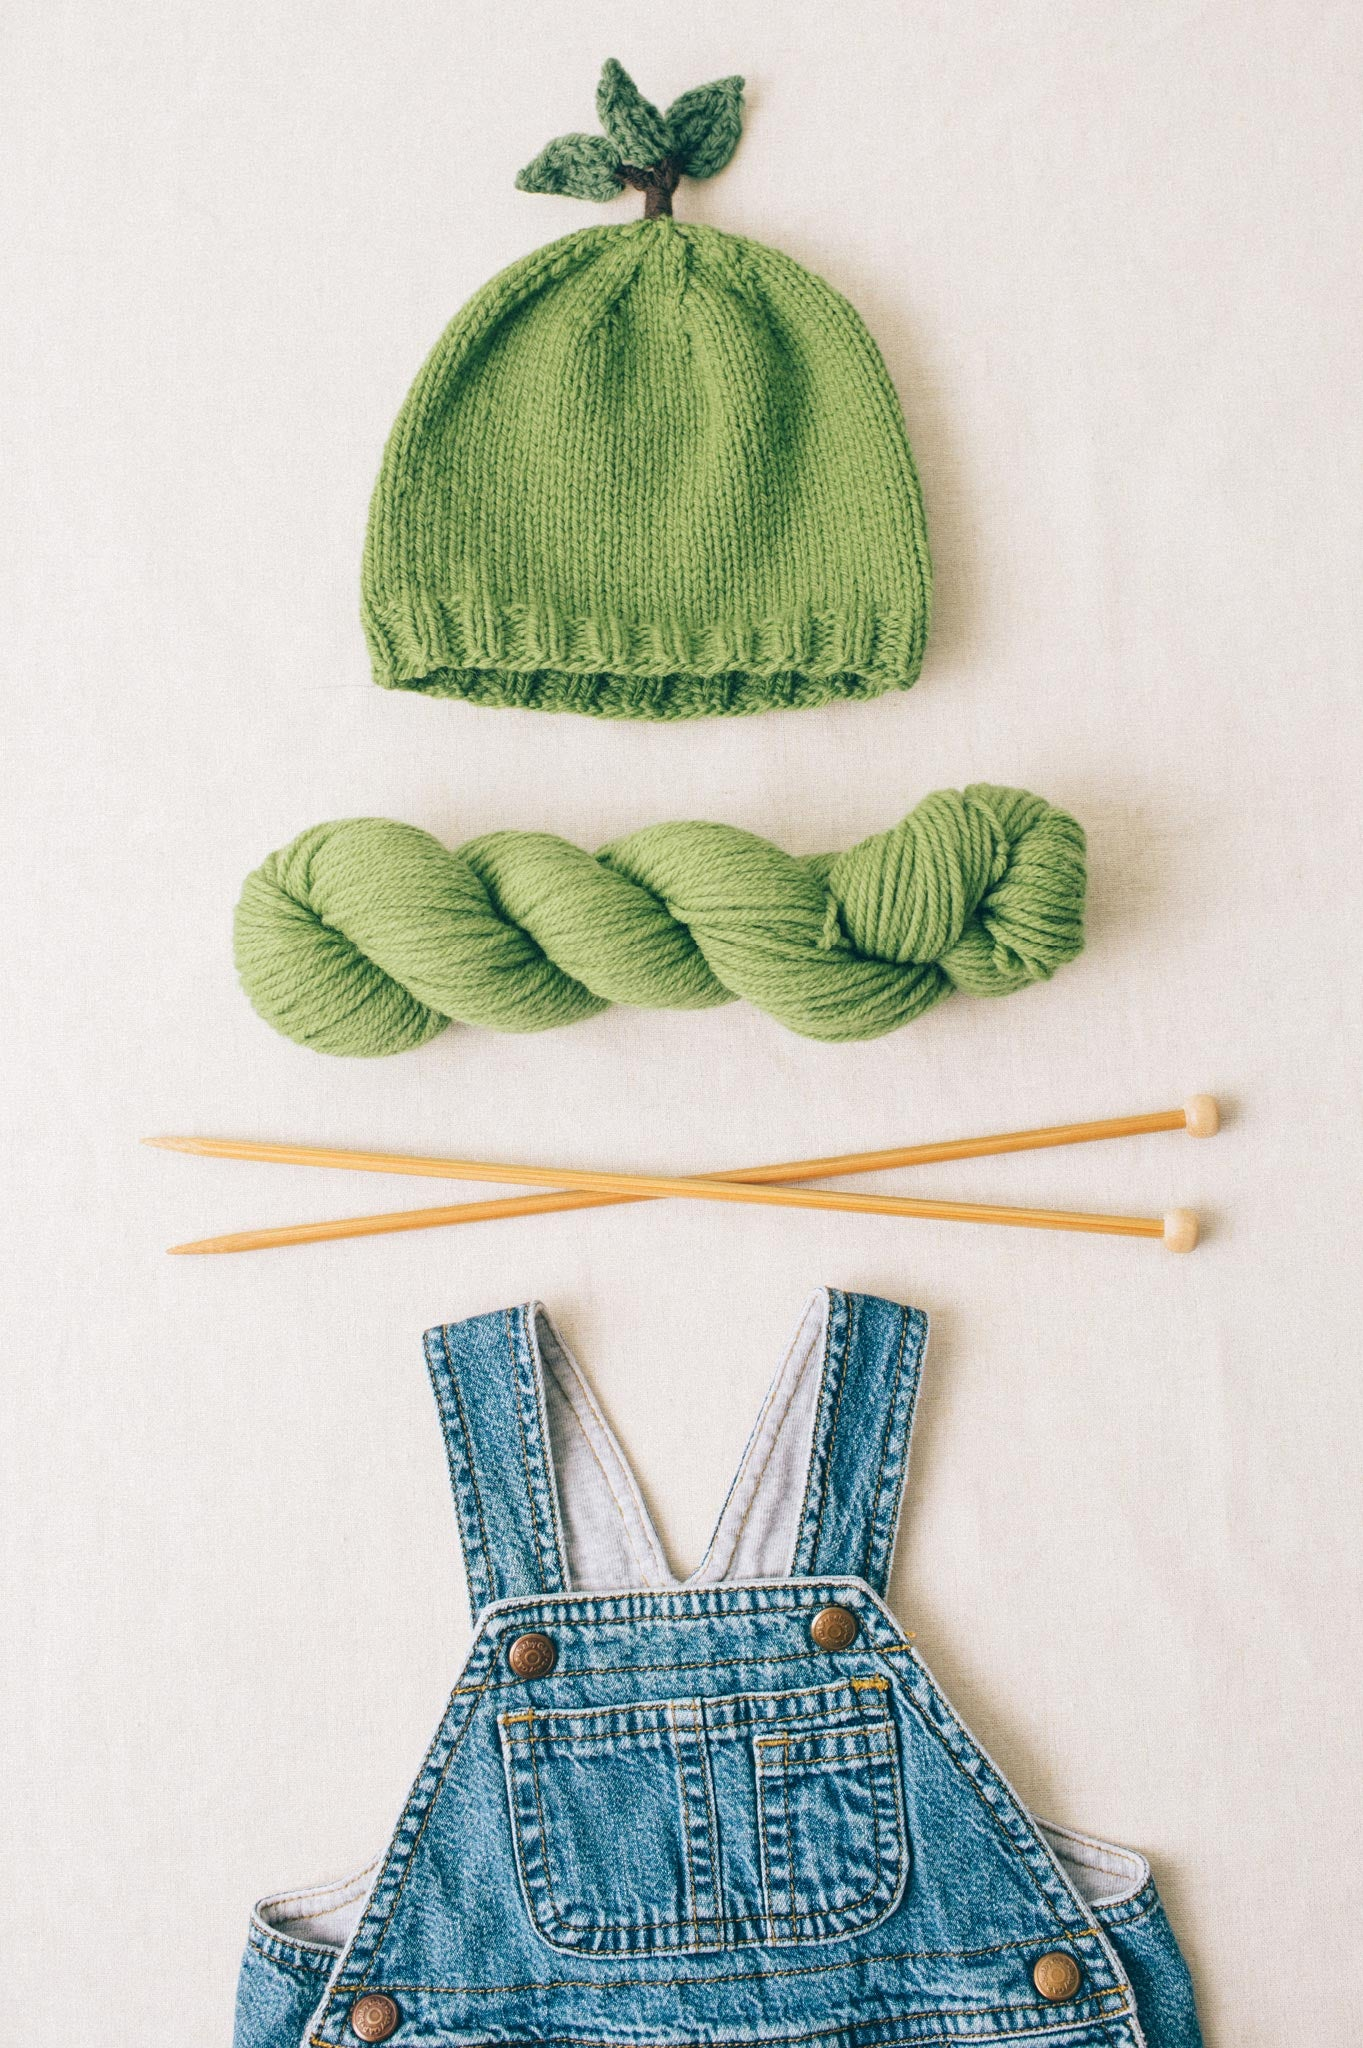 leaf-top baby hat knitting pattern - Quince and Co